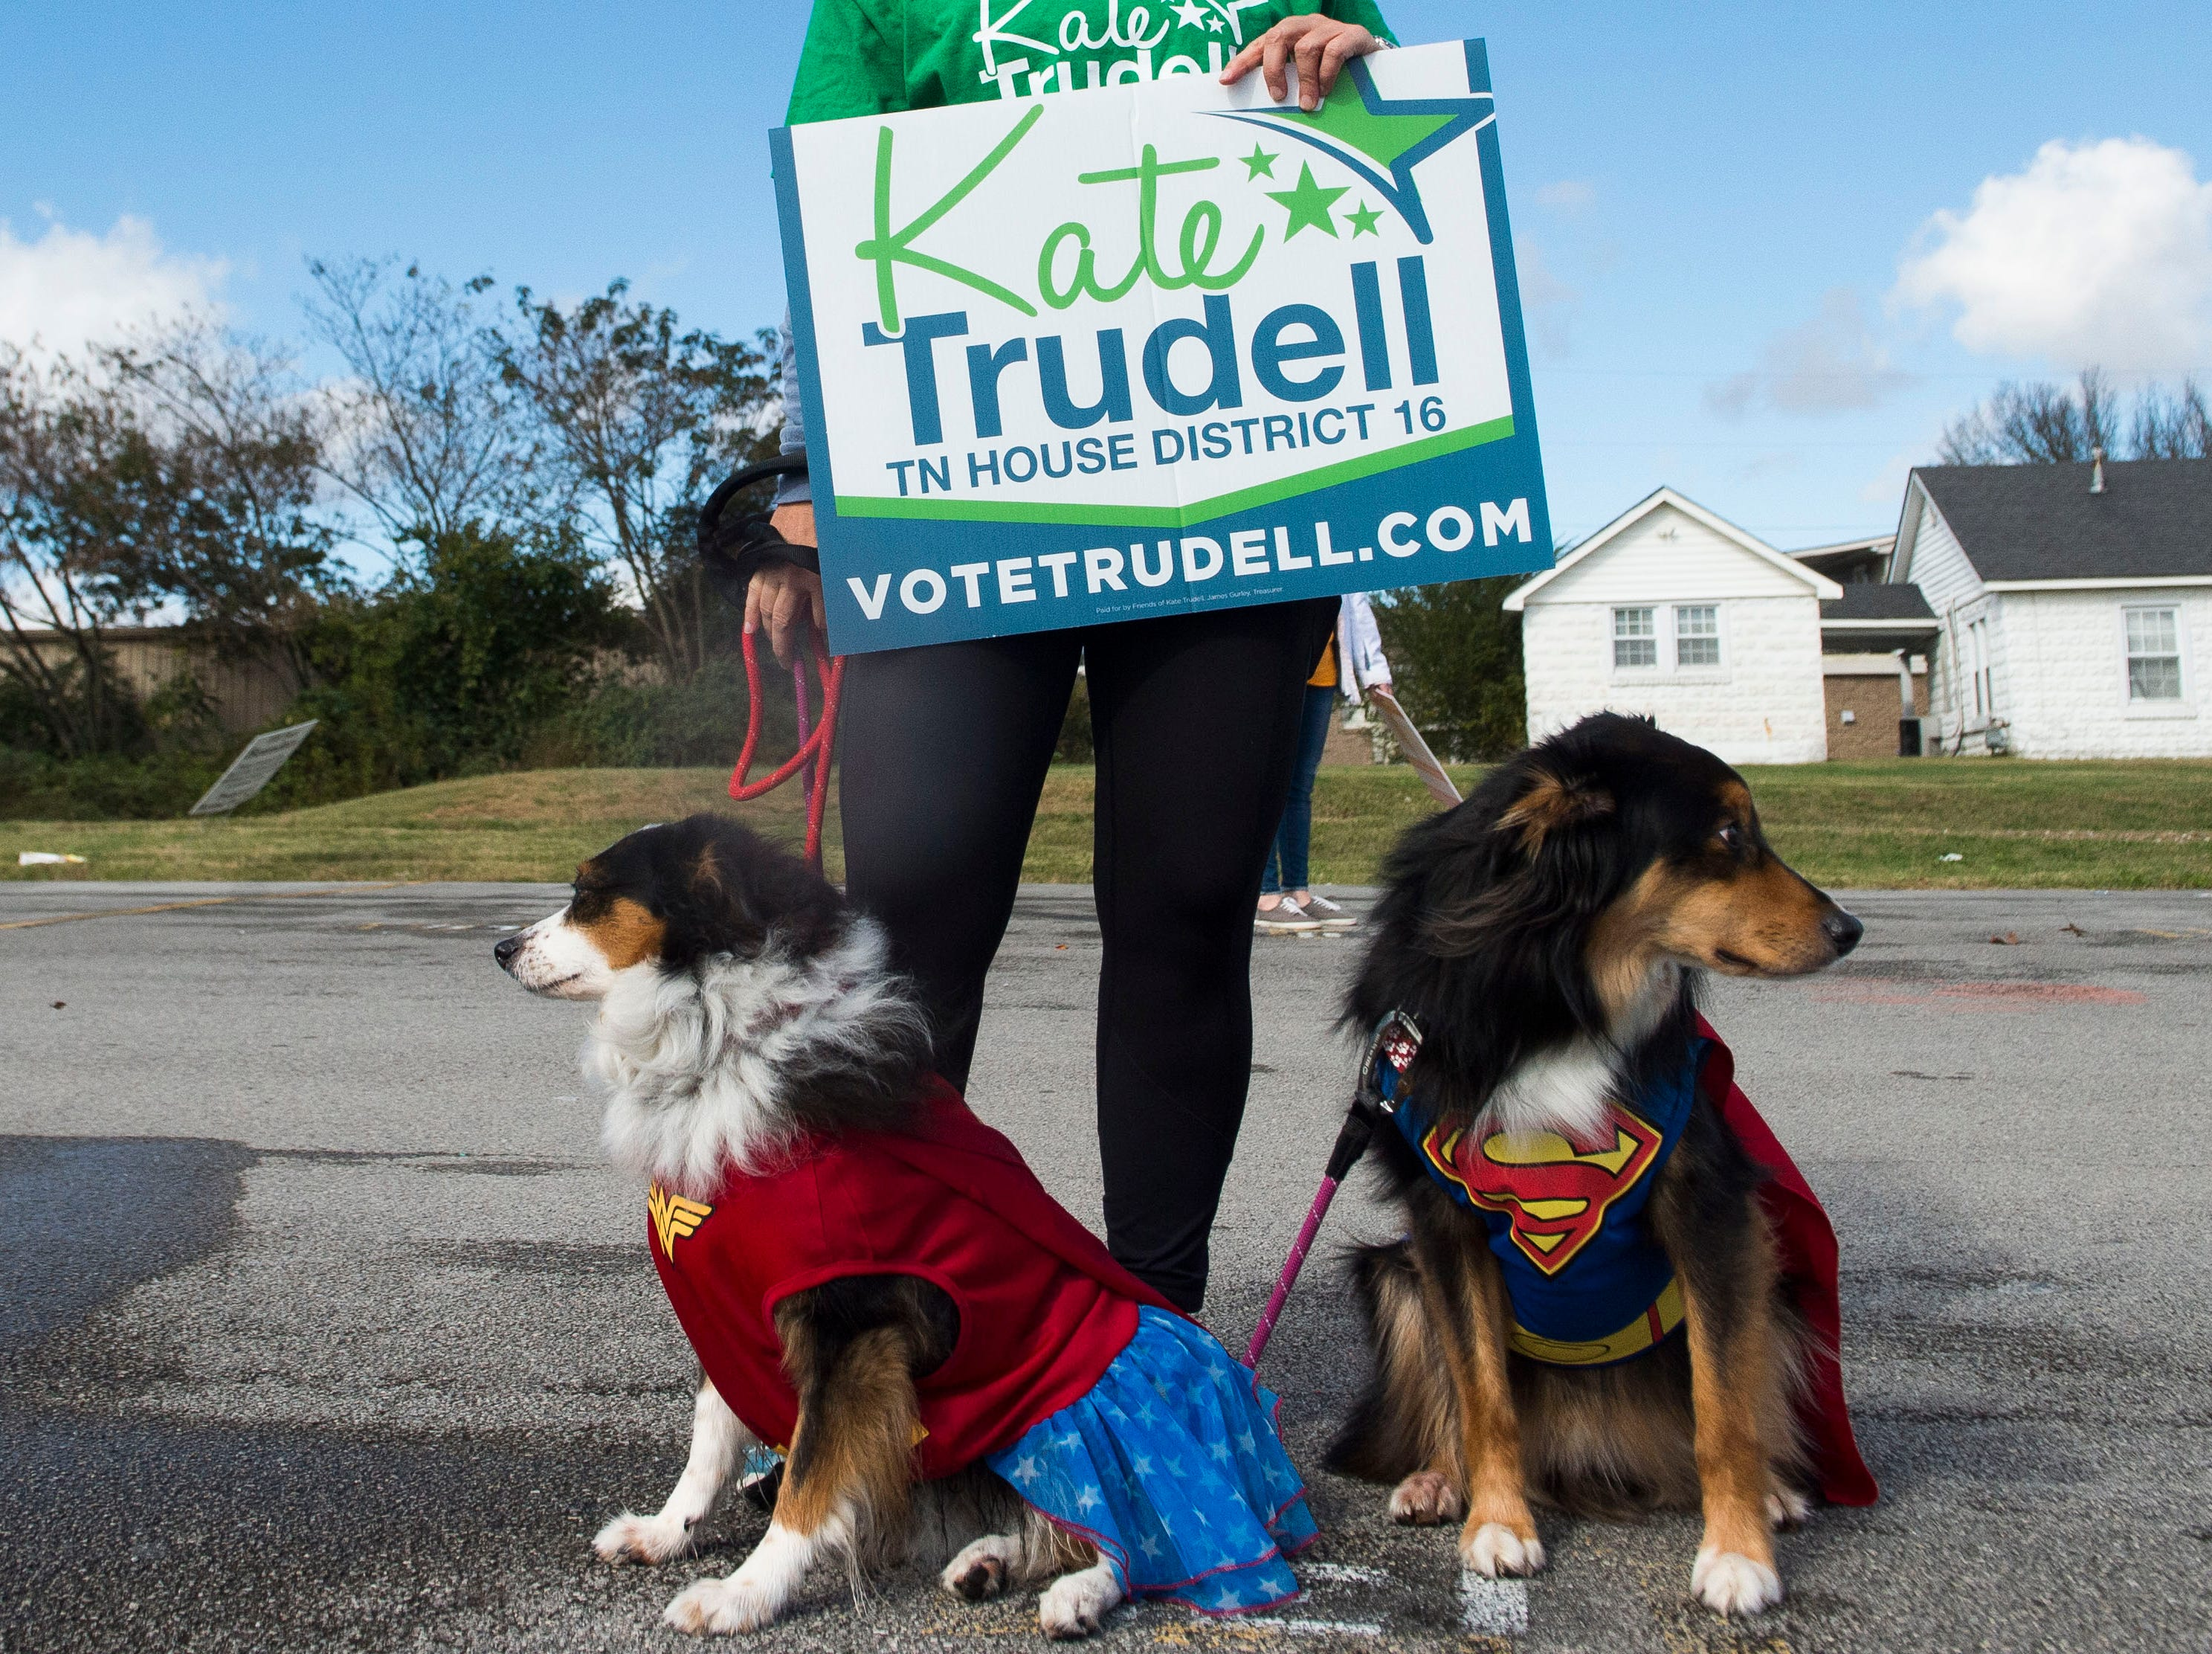 Leigh Garrett stands with her dogs Zoey, left, and Zander, right, while campaigning for Kate Trudell and Phil Bredesen, outside Powell High School's sports complex in Powell on Election Day, Tuesday, Nov. 6, 2018.